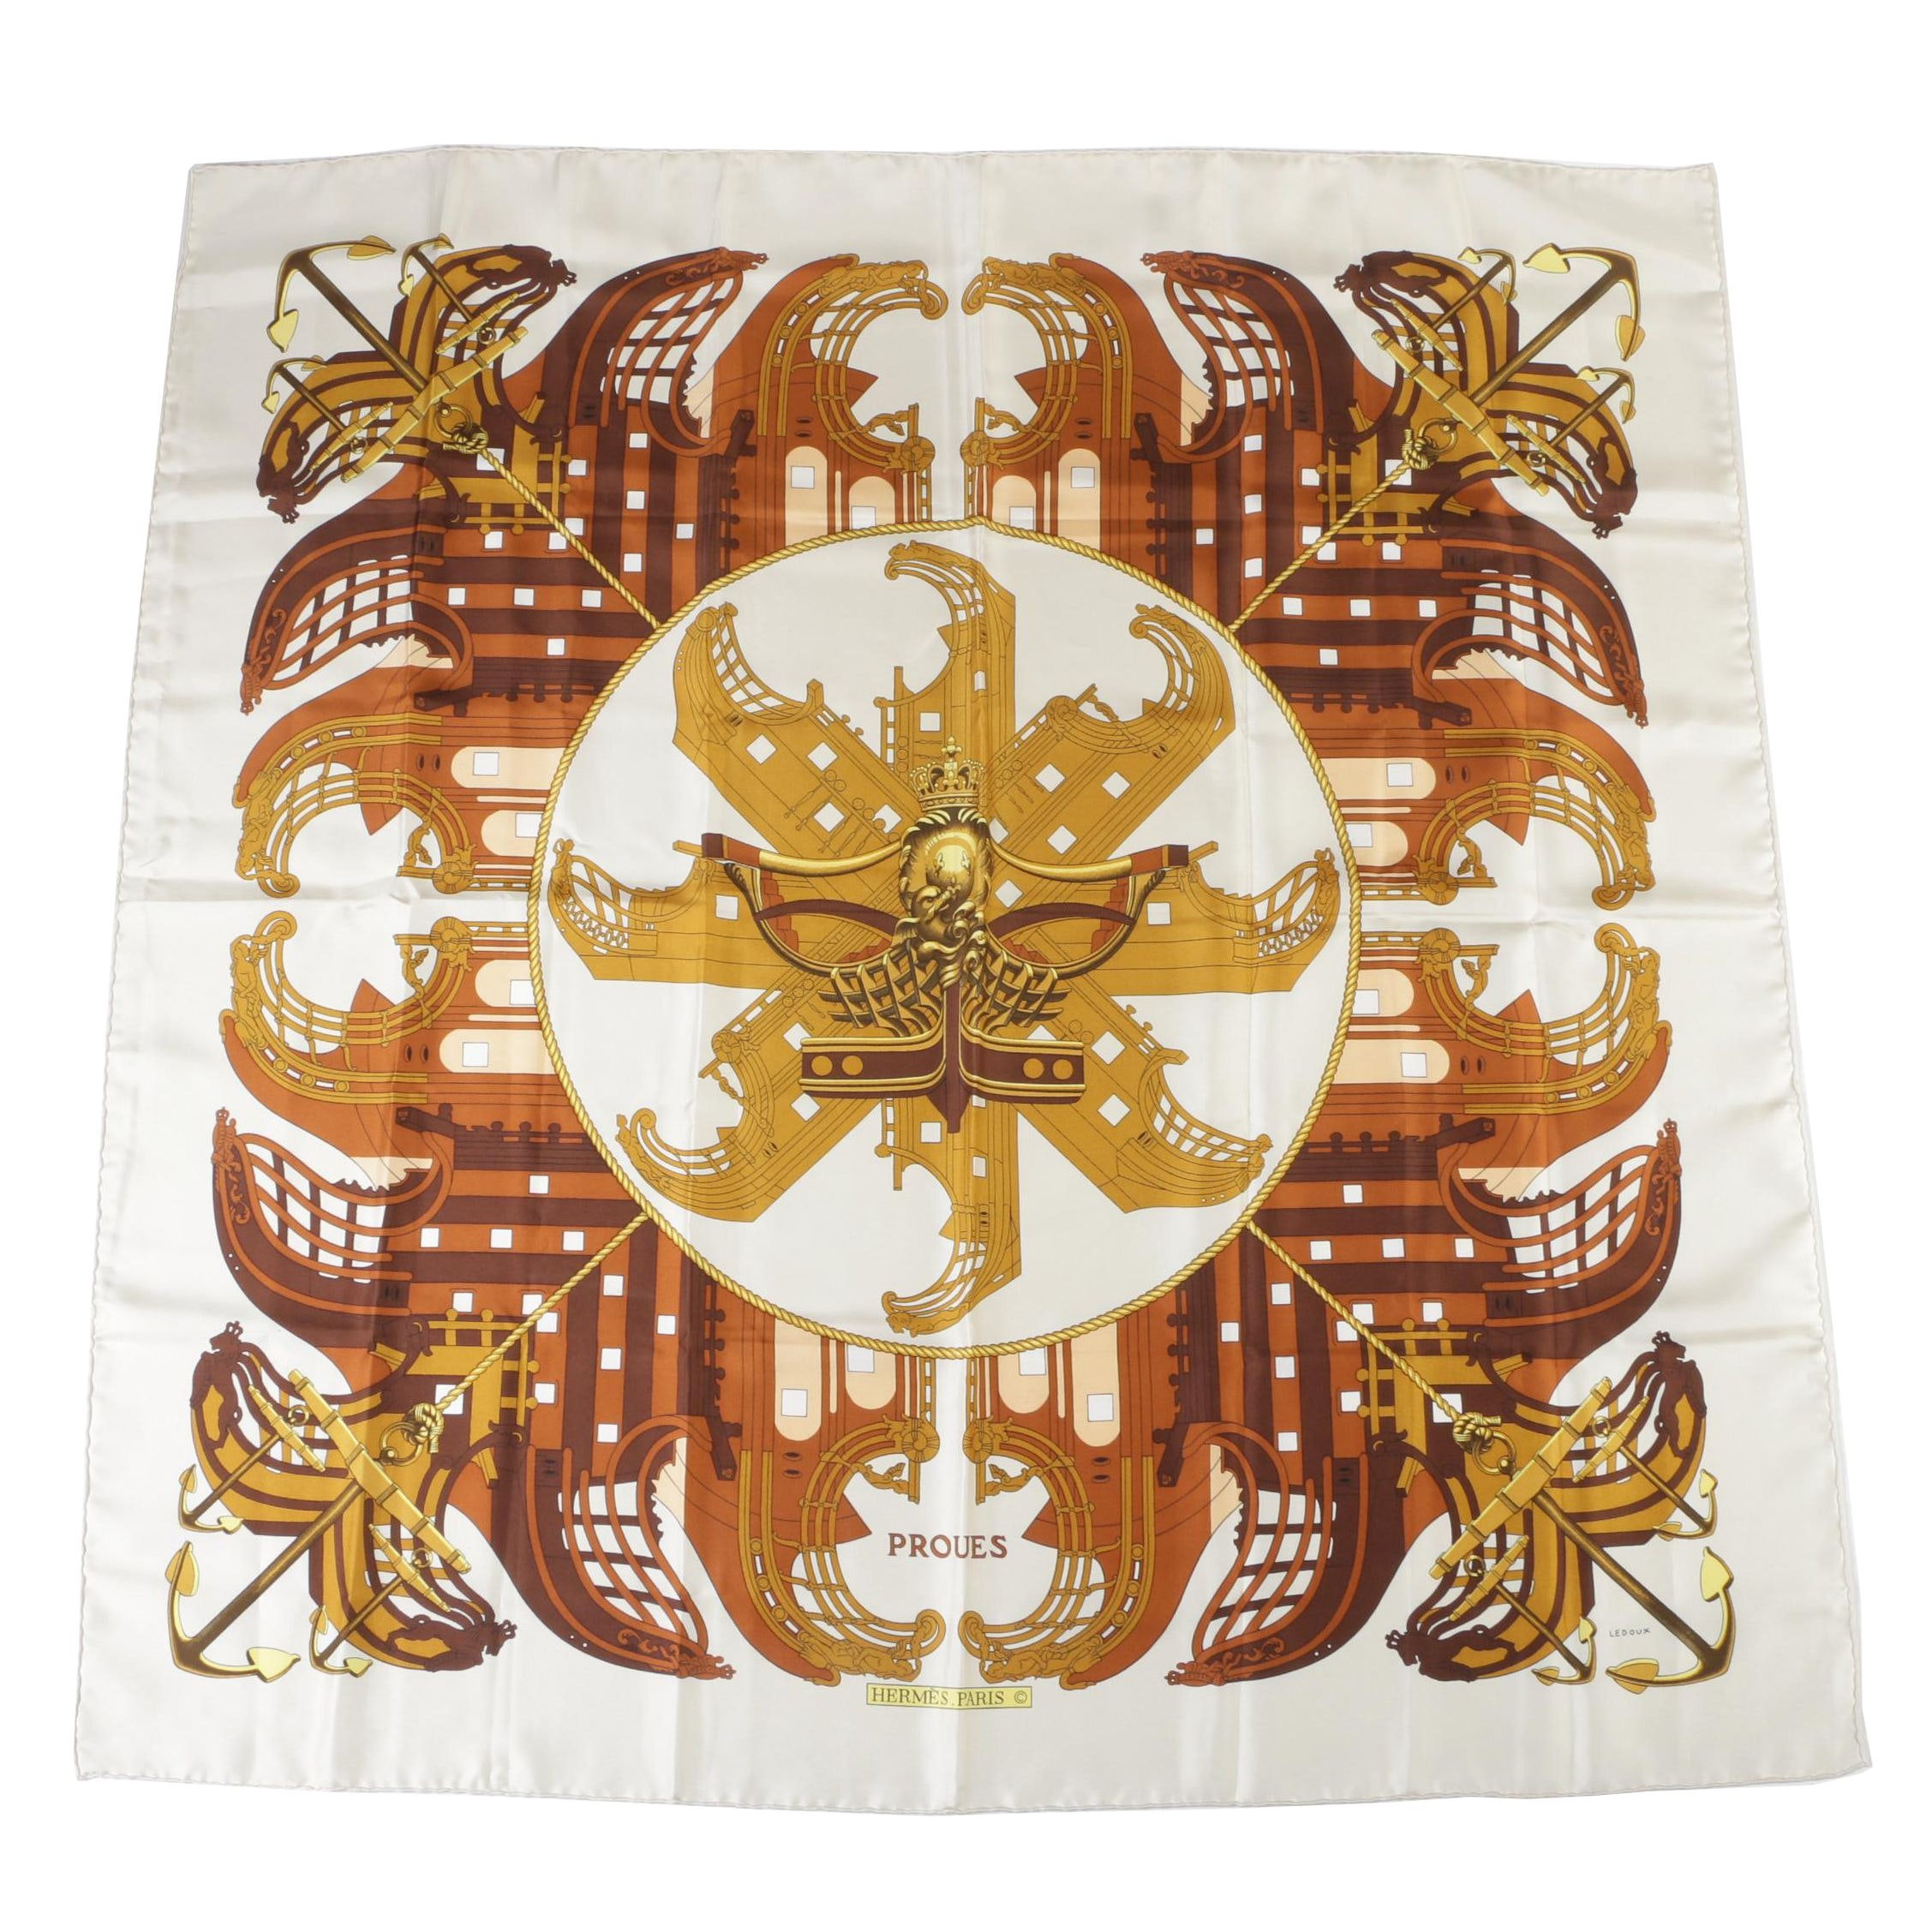 "Hermès of Paris Silk ""Proues"" Scarf Designed by Philippe Ledoux"